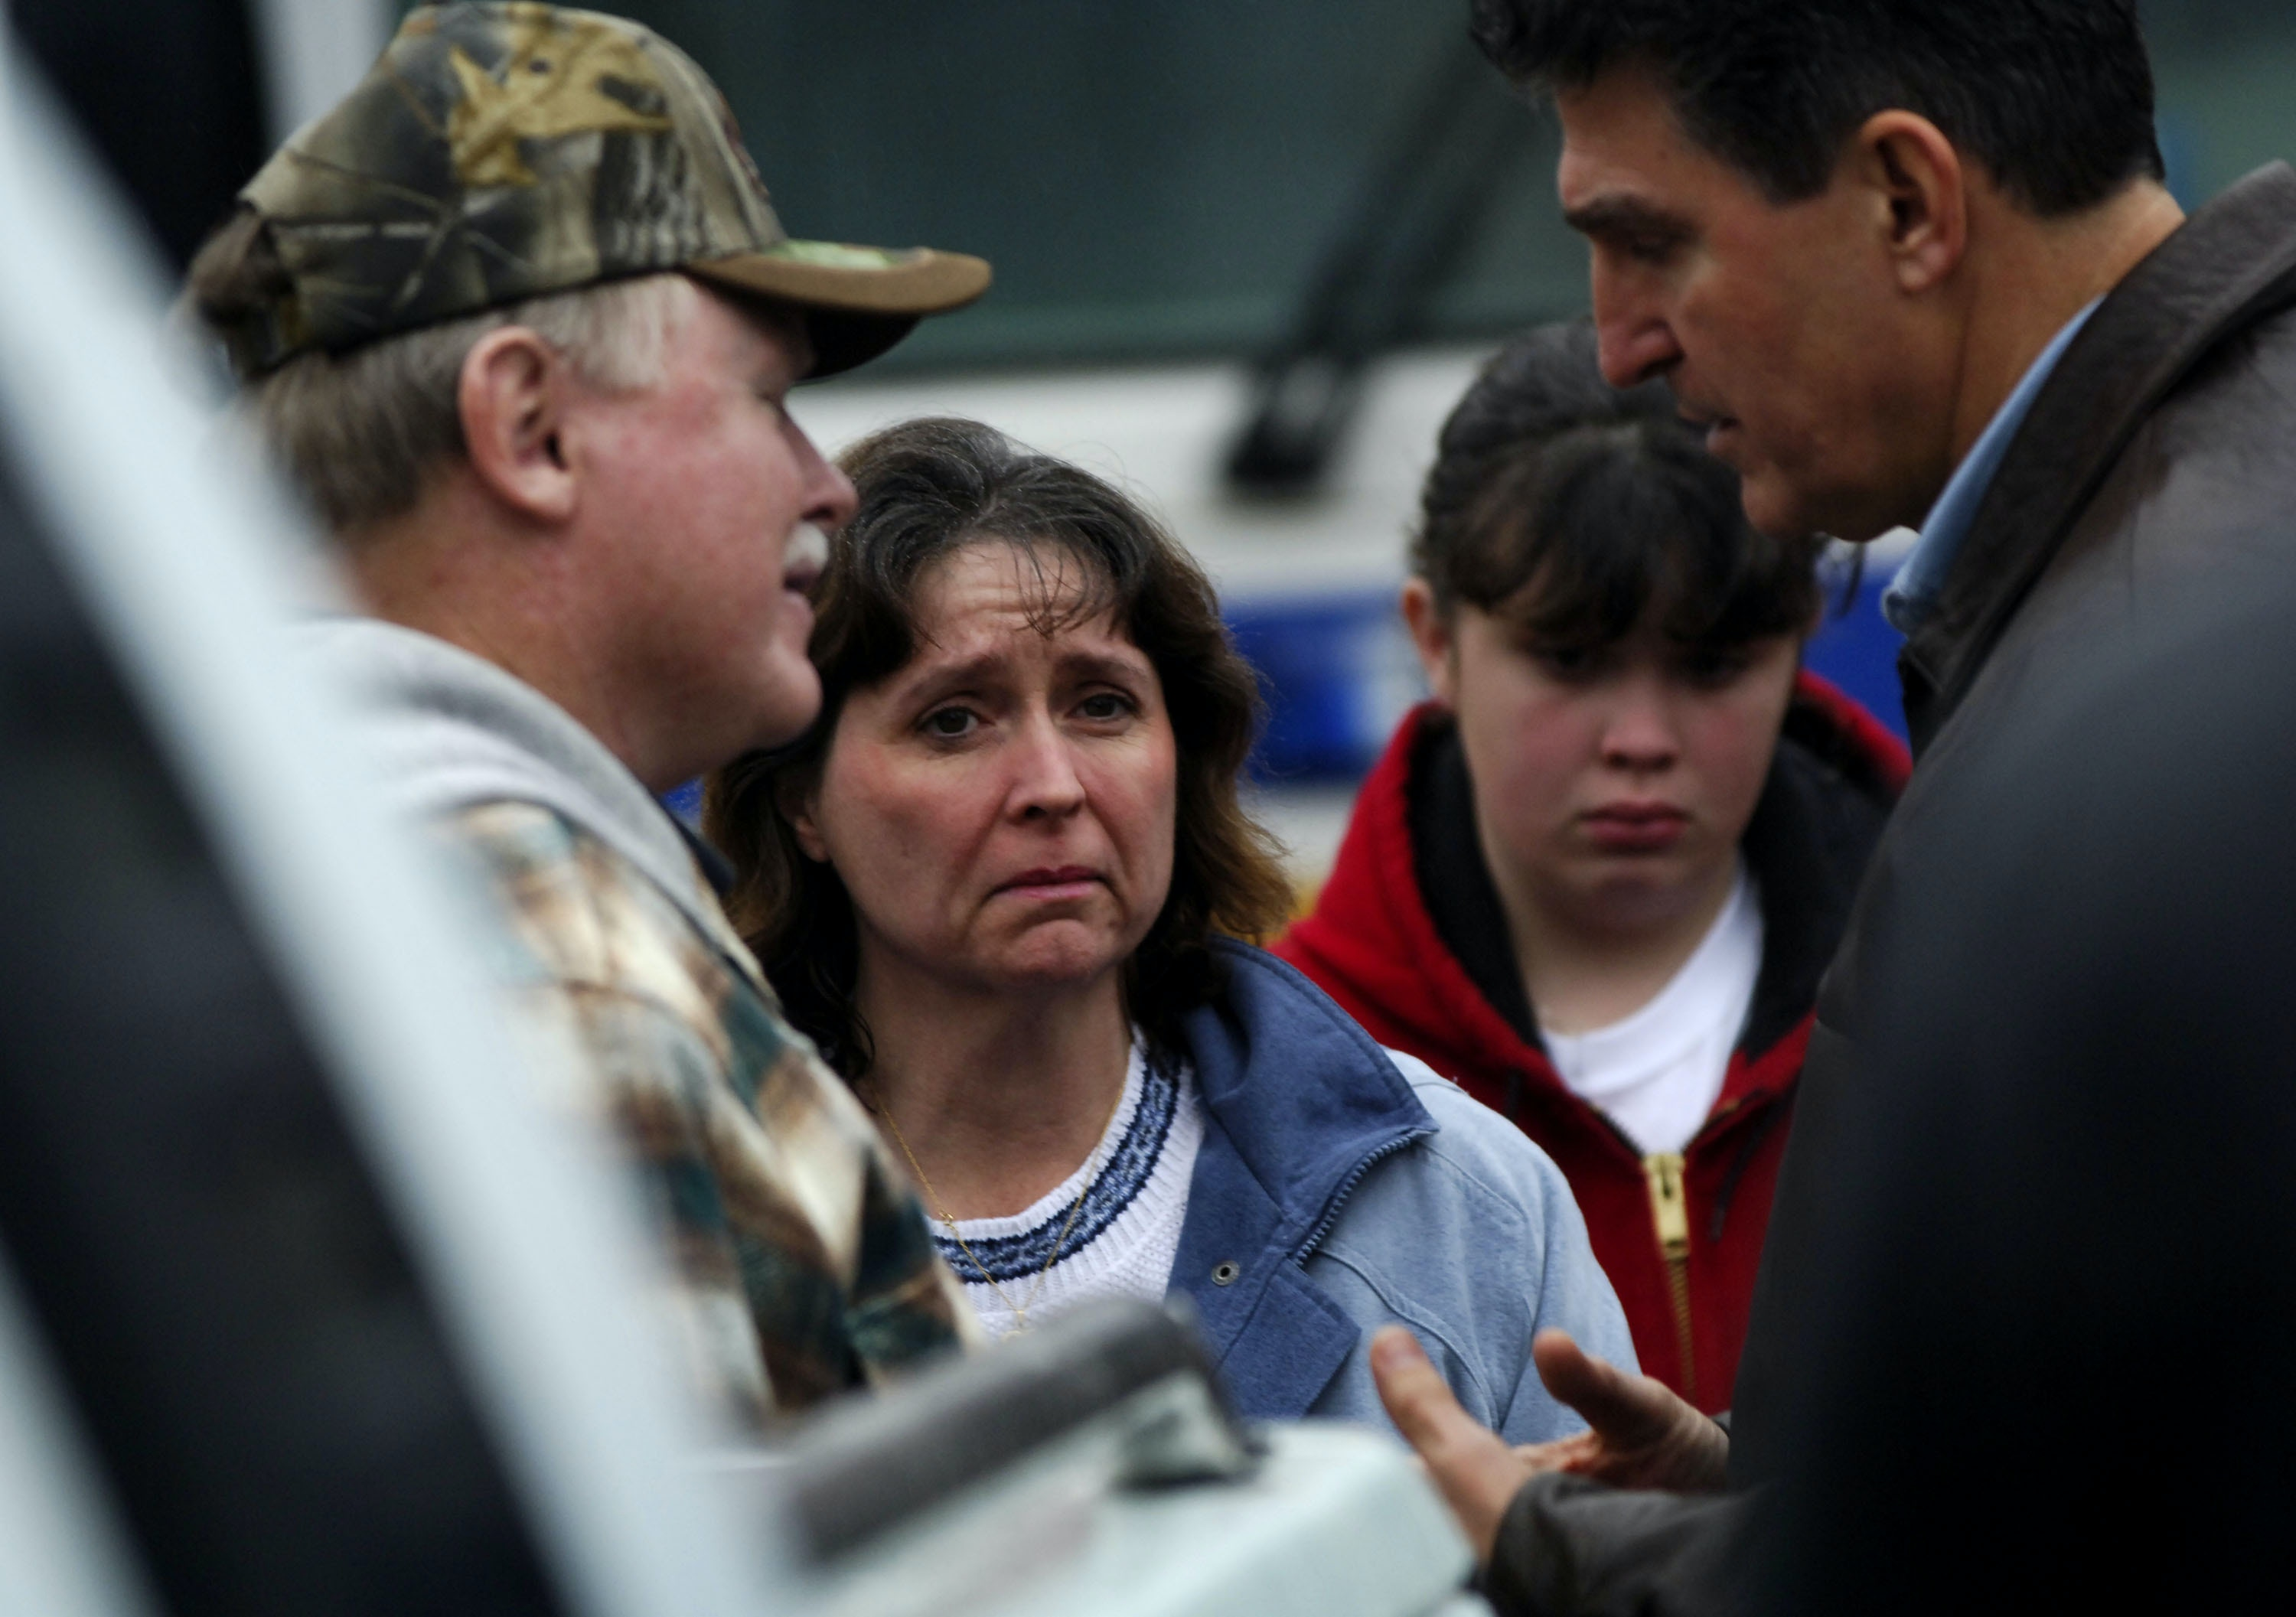 TALLMANSVILLE, WV -  JANUARY 3:  West Virginia Gov. Joe Manchin (R) speaks with residents about rescue operations at the Sago Mine January 3, 2006 in Tallmansville, West Virginia. Rescuers sped up efforts today to try to reach 13 miners who they have not been able to contact since an explosion yesterday cut off access to a two-mile shaft about 260 feet below the surface of the mine.  (Photo by Jeff Swensen/Getty Images)